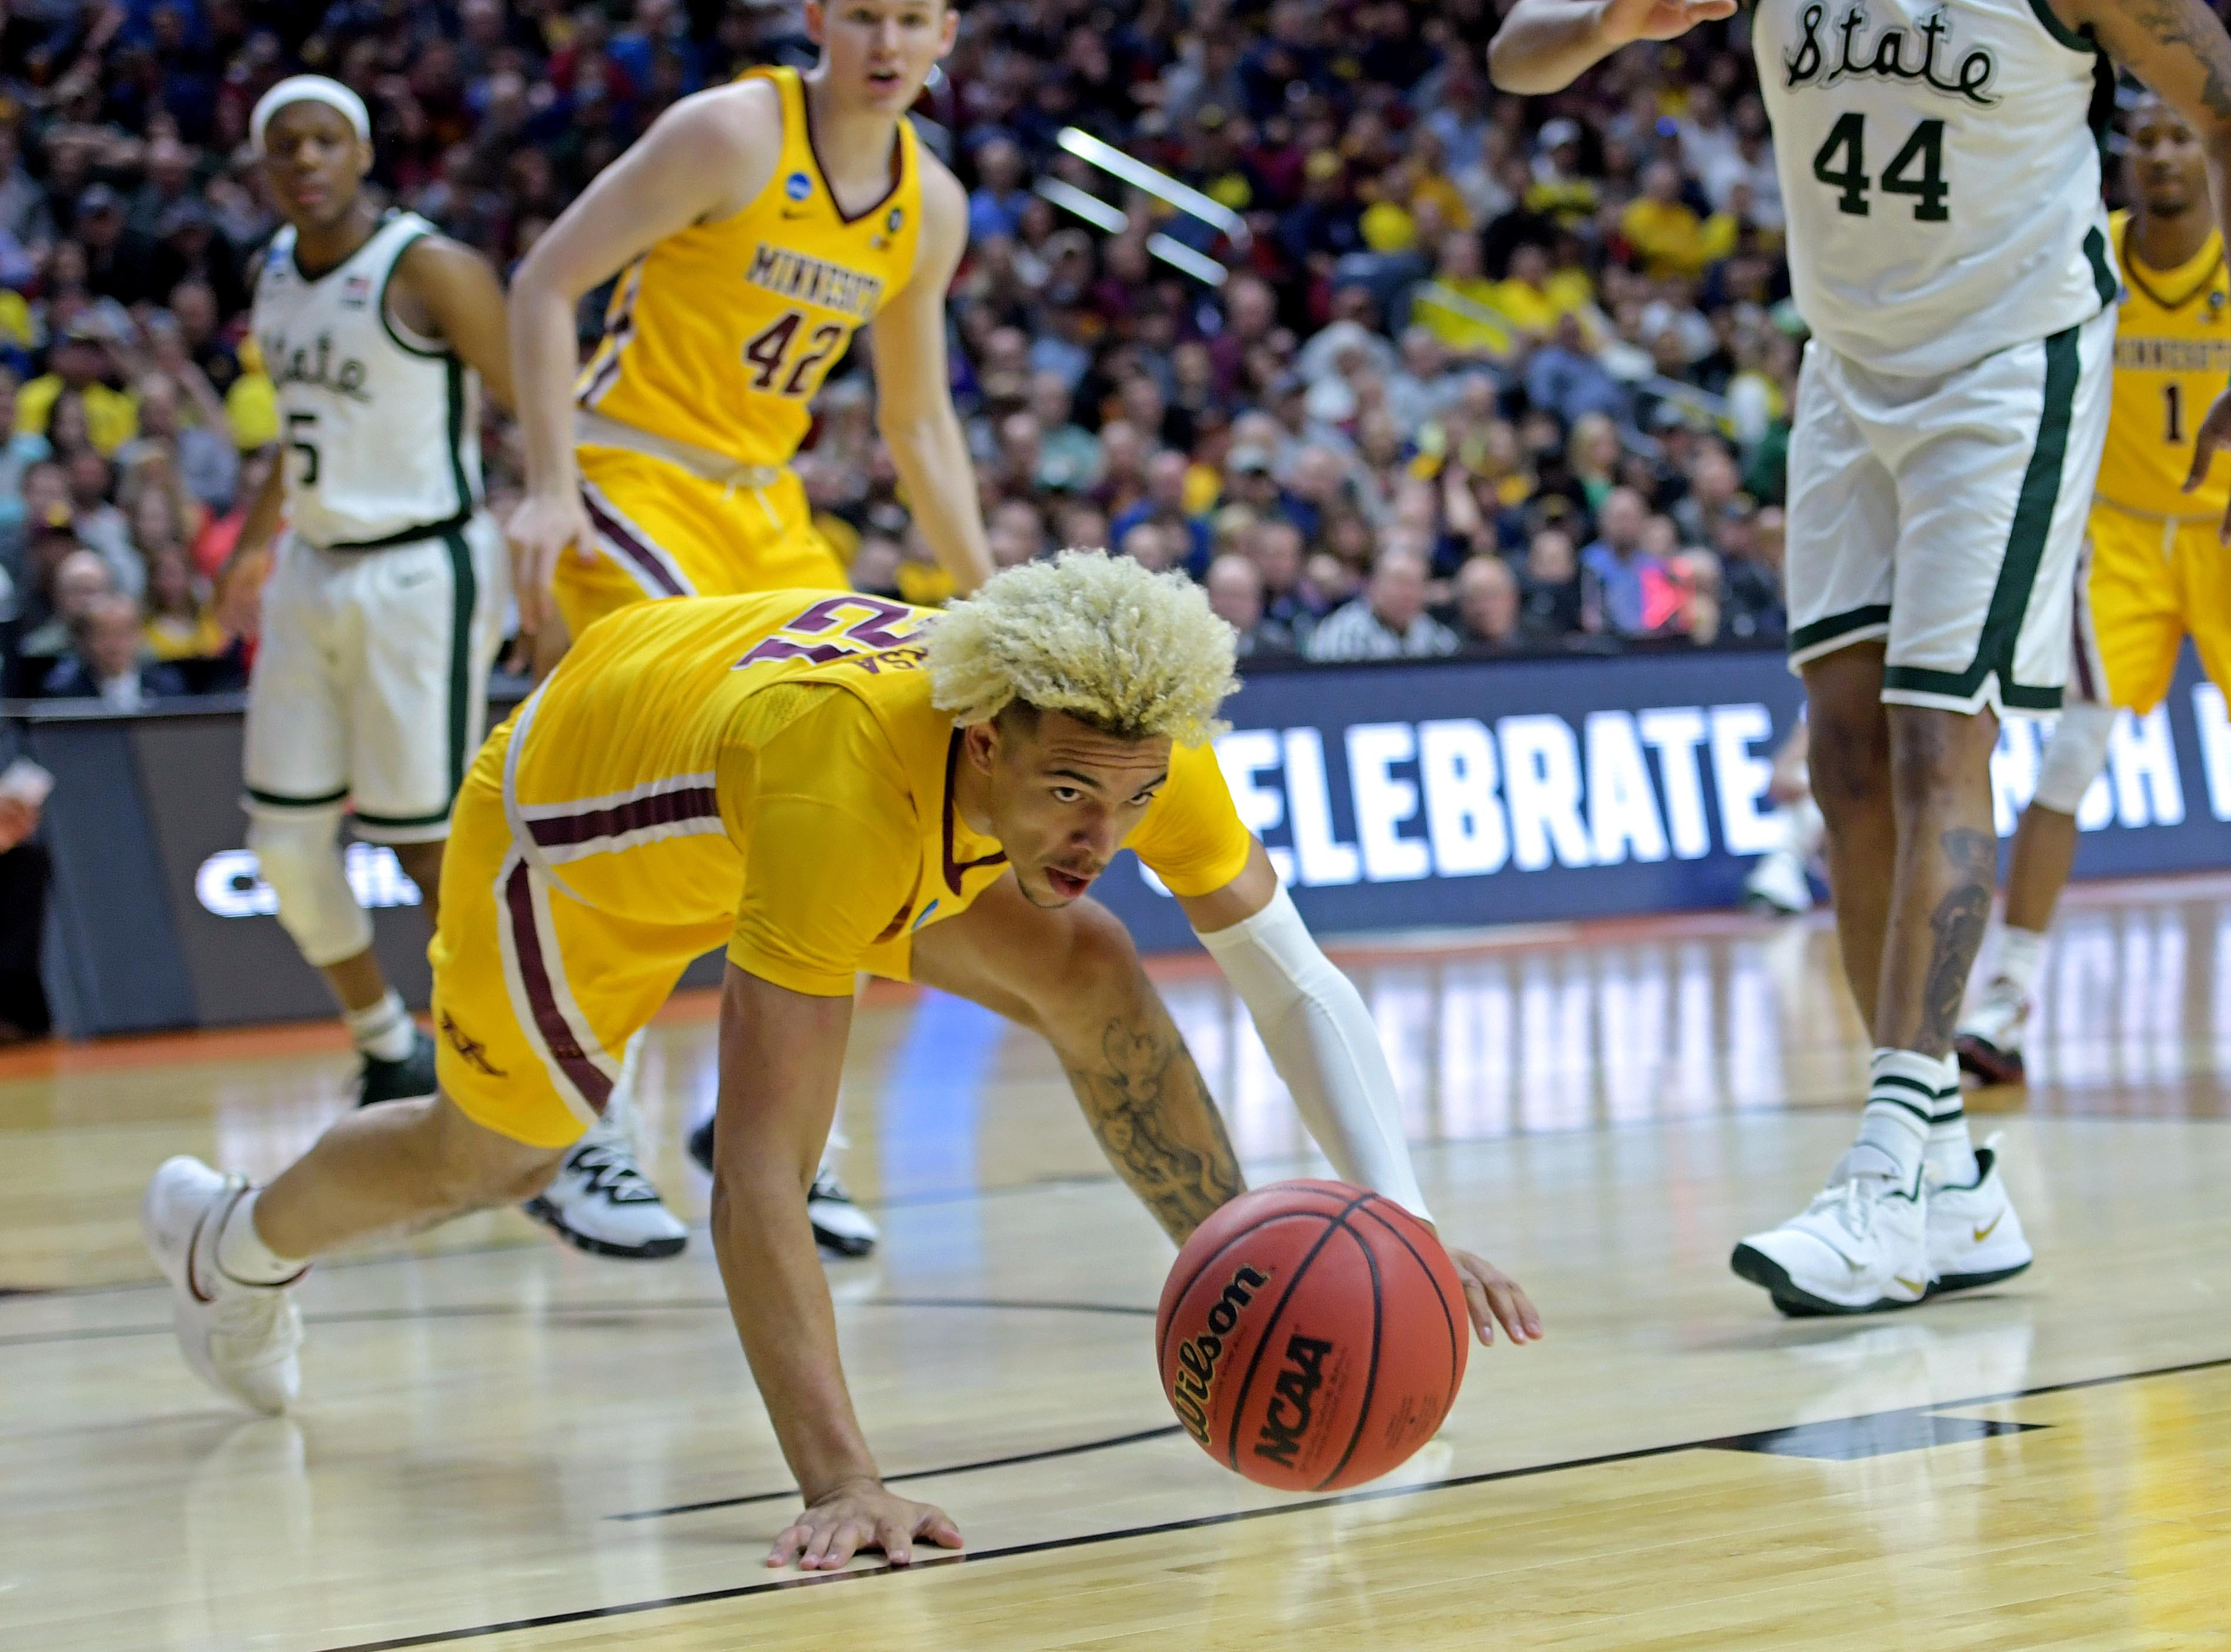 Mar 23, 2019; Des Moines, IA, United States; Minnesota Golden Gophers forward Jarvis Omersa (21) goes for a loose ball during the first half against the Michigan State Spartans in the second round of the 2019 NCAA Tournament at Wells Fargo Arena. Mandatory Credit: Steven Branscombe-USA TODAY Sports